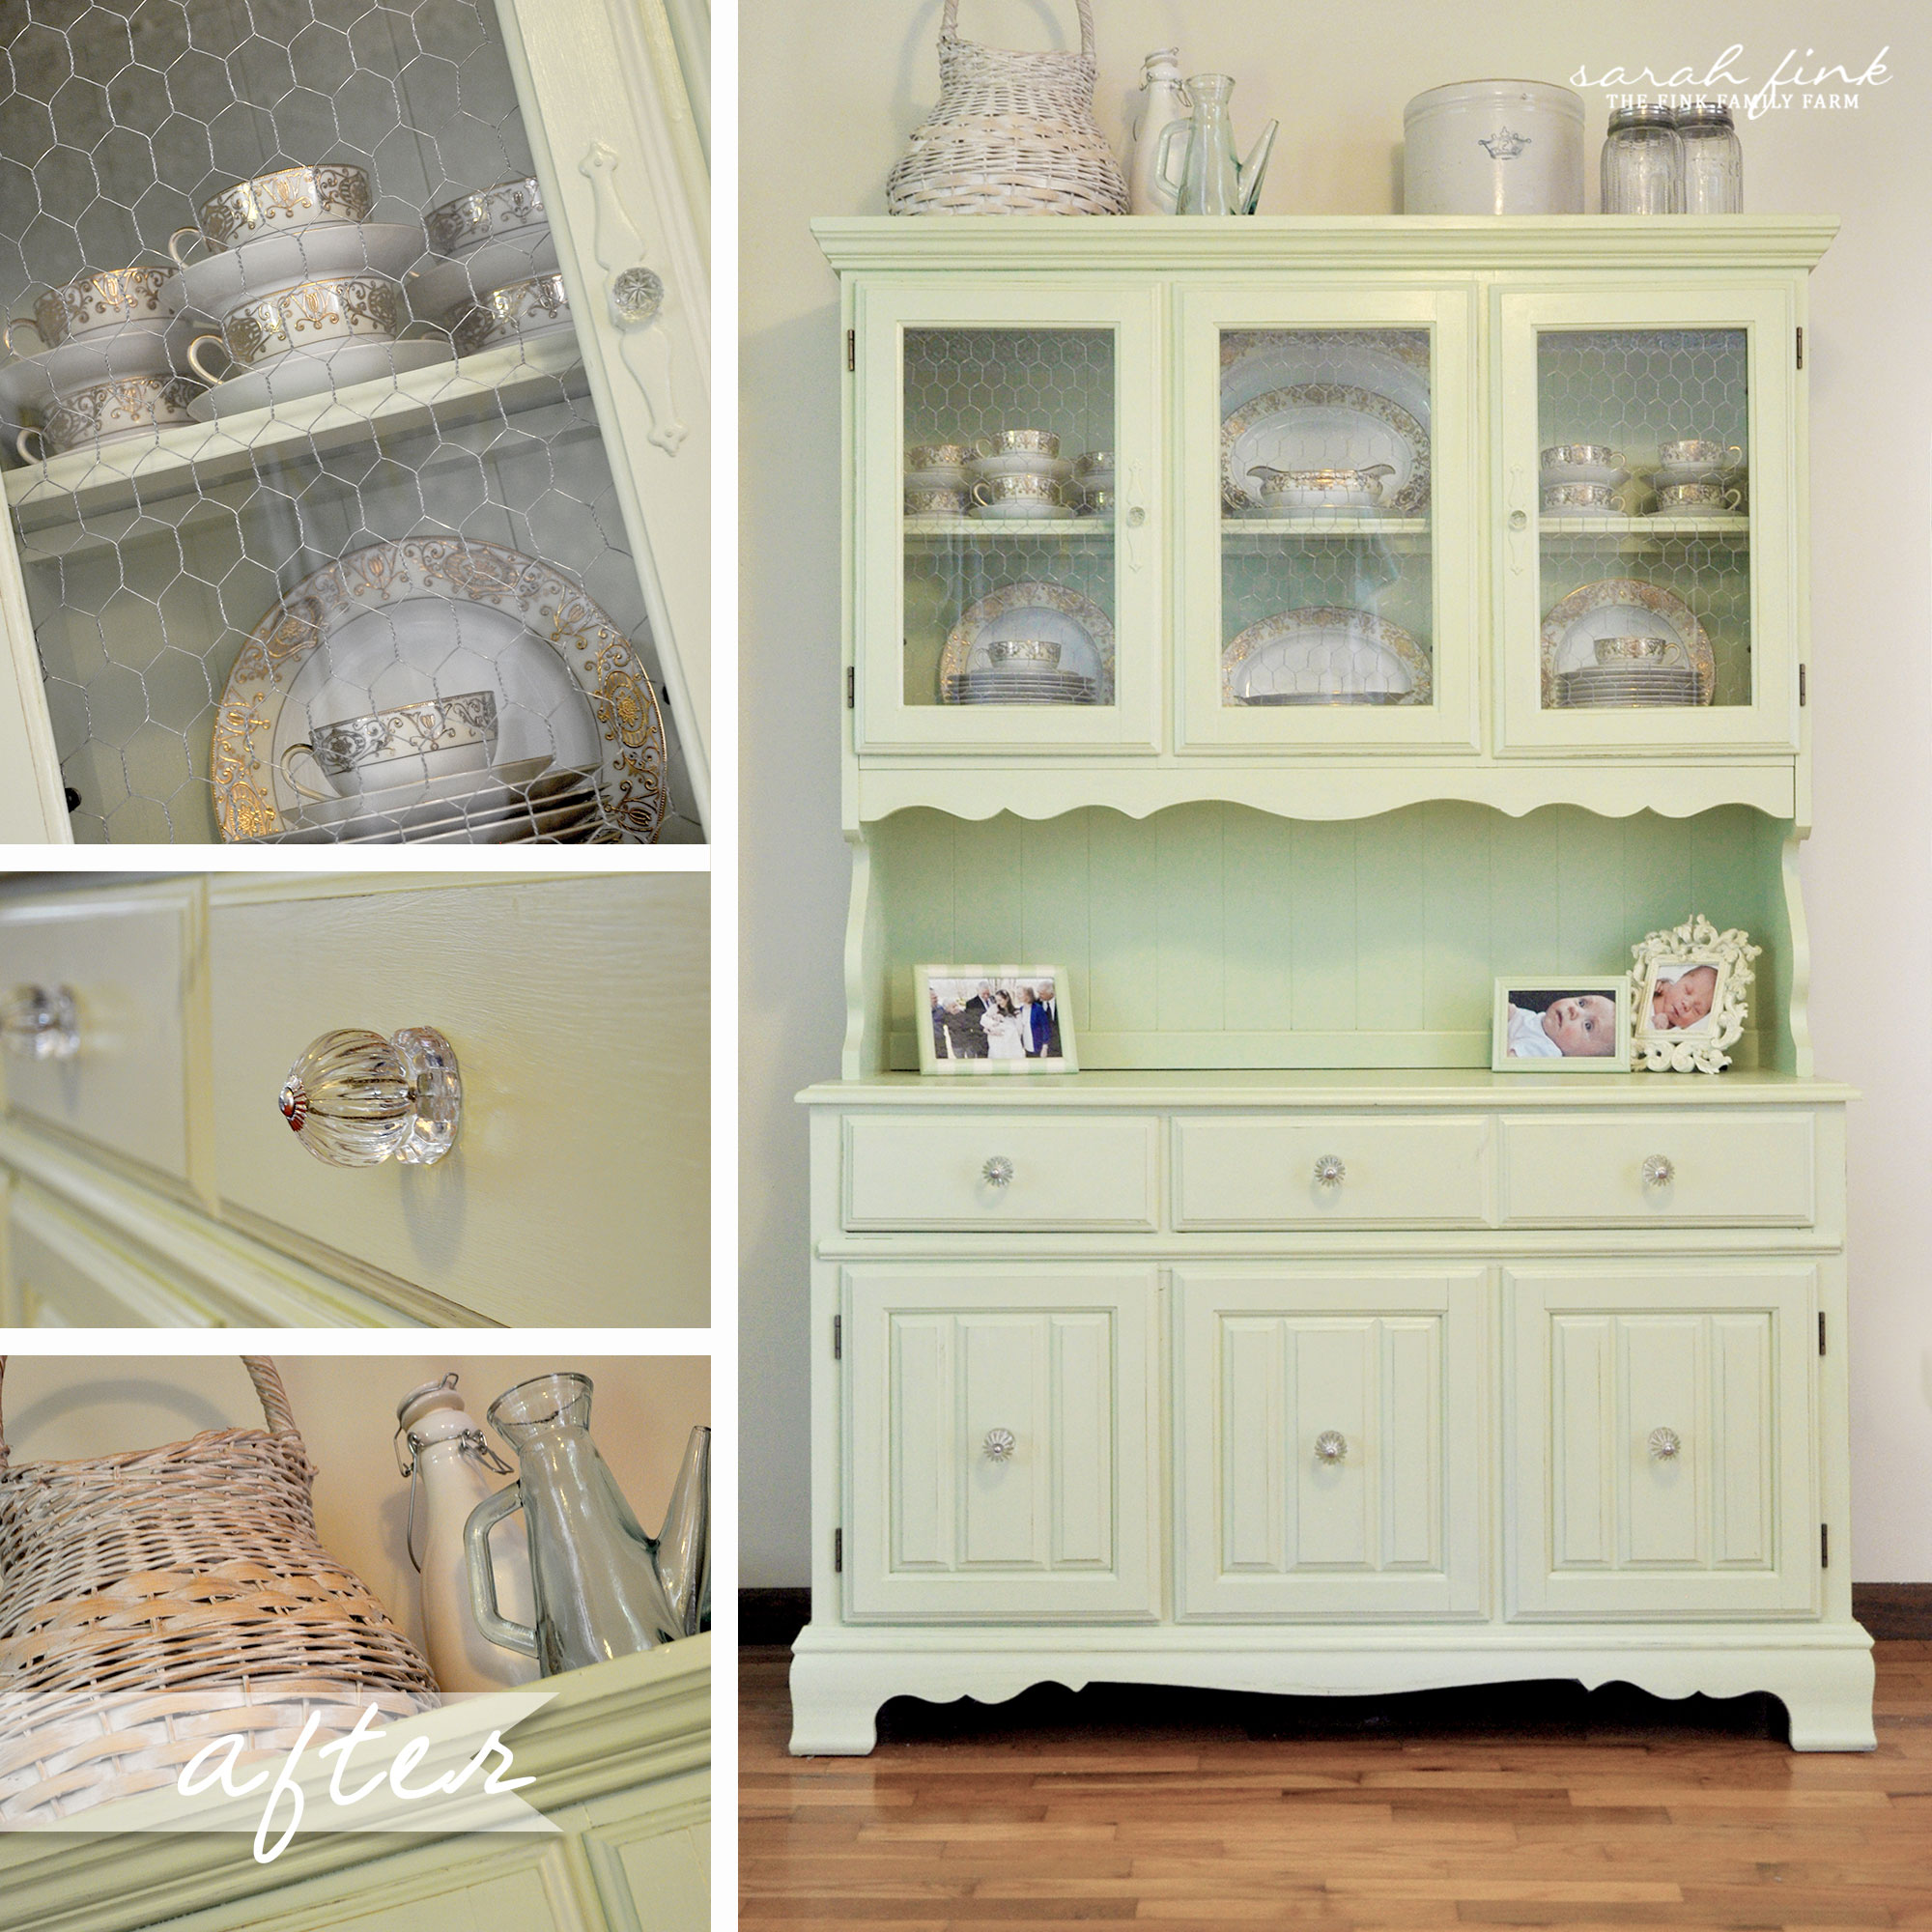 Creating A Bold Statement Piece Outdated China Cabinet Painted Turned Into Command Center